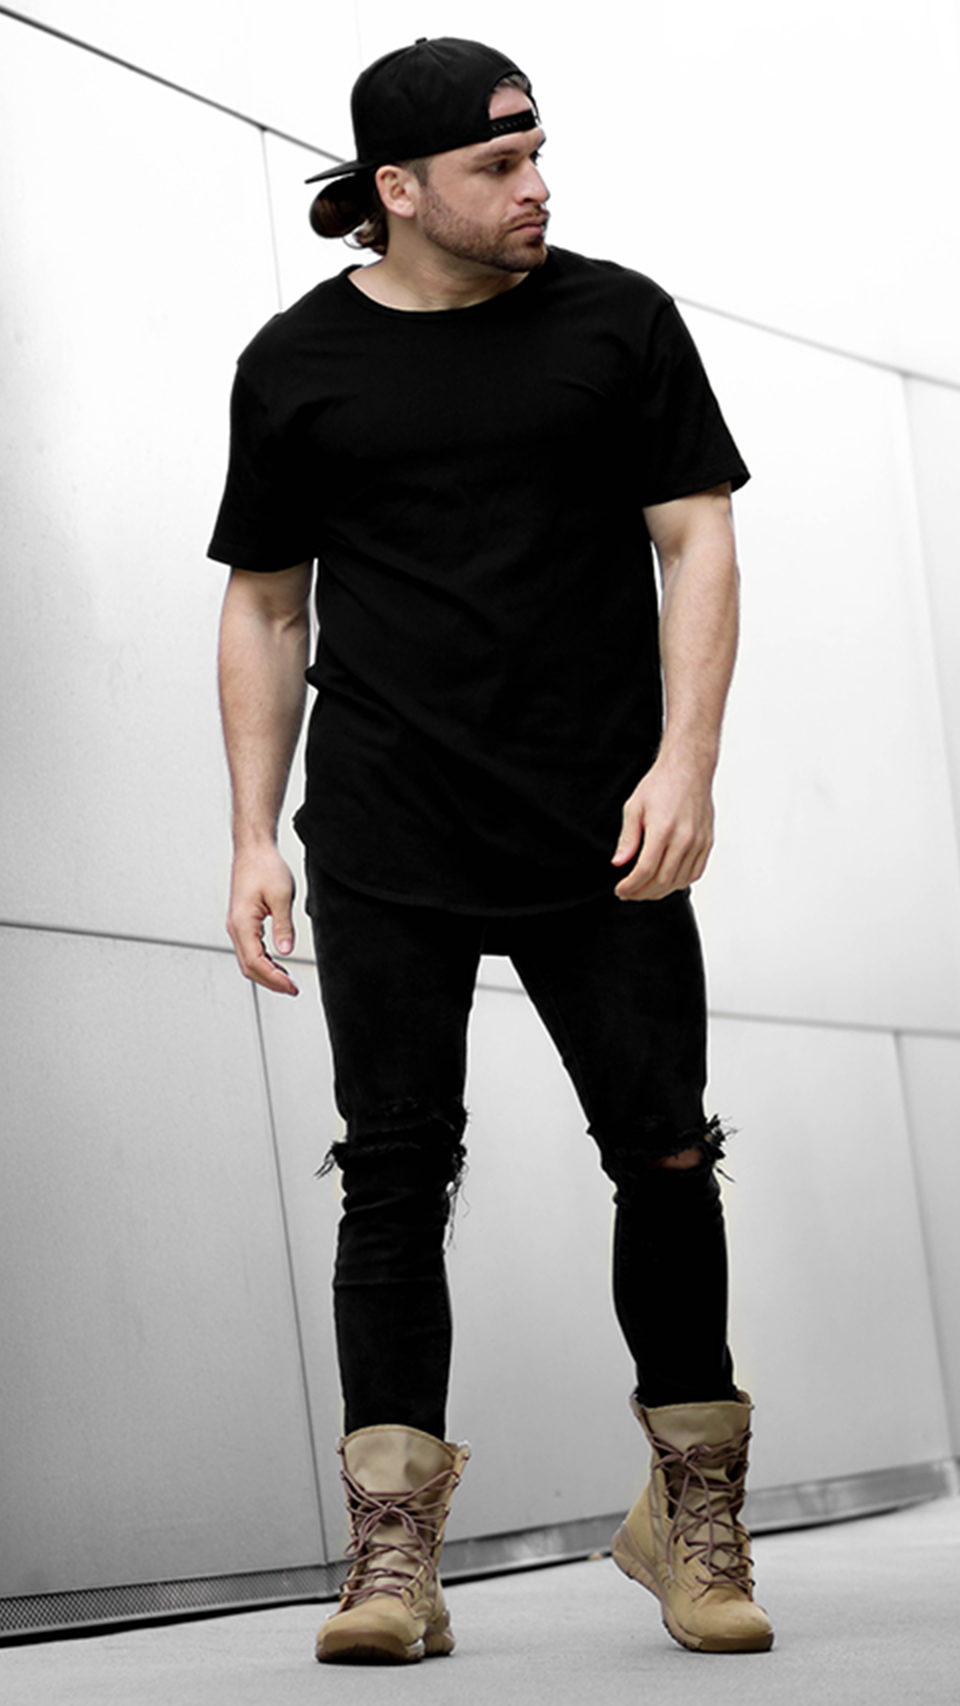 River Davis Men's Fashion All Blvck